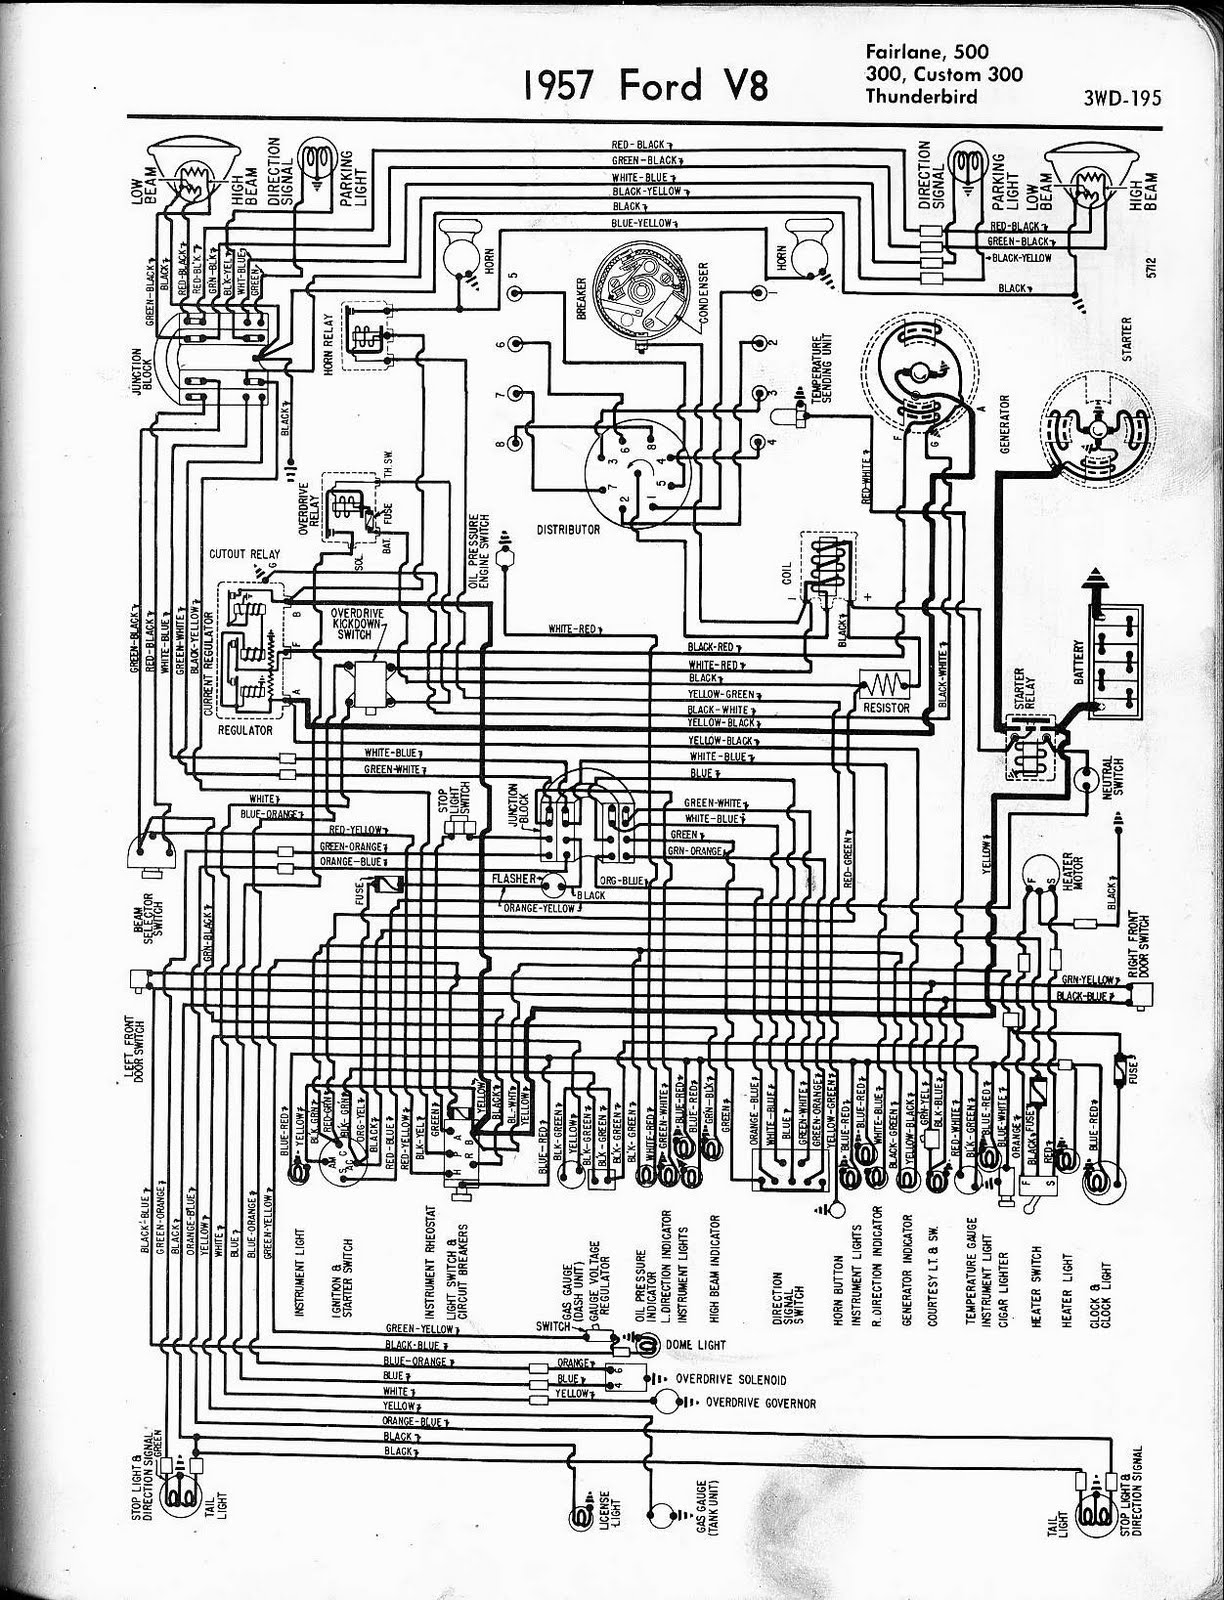 1957 Ford V8 Fairlane Custom300 Or on kenworth truck wiring diagrams